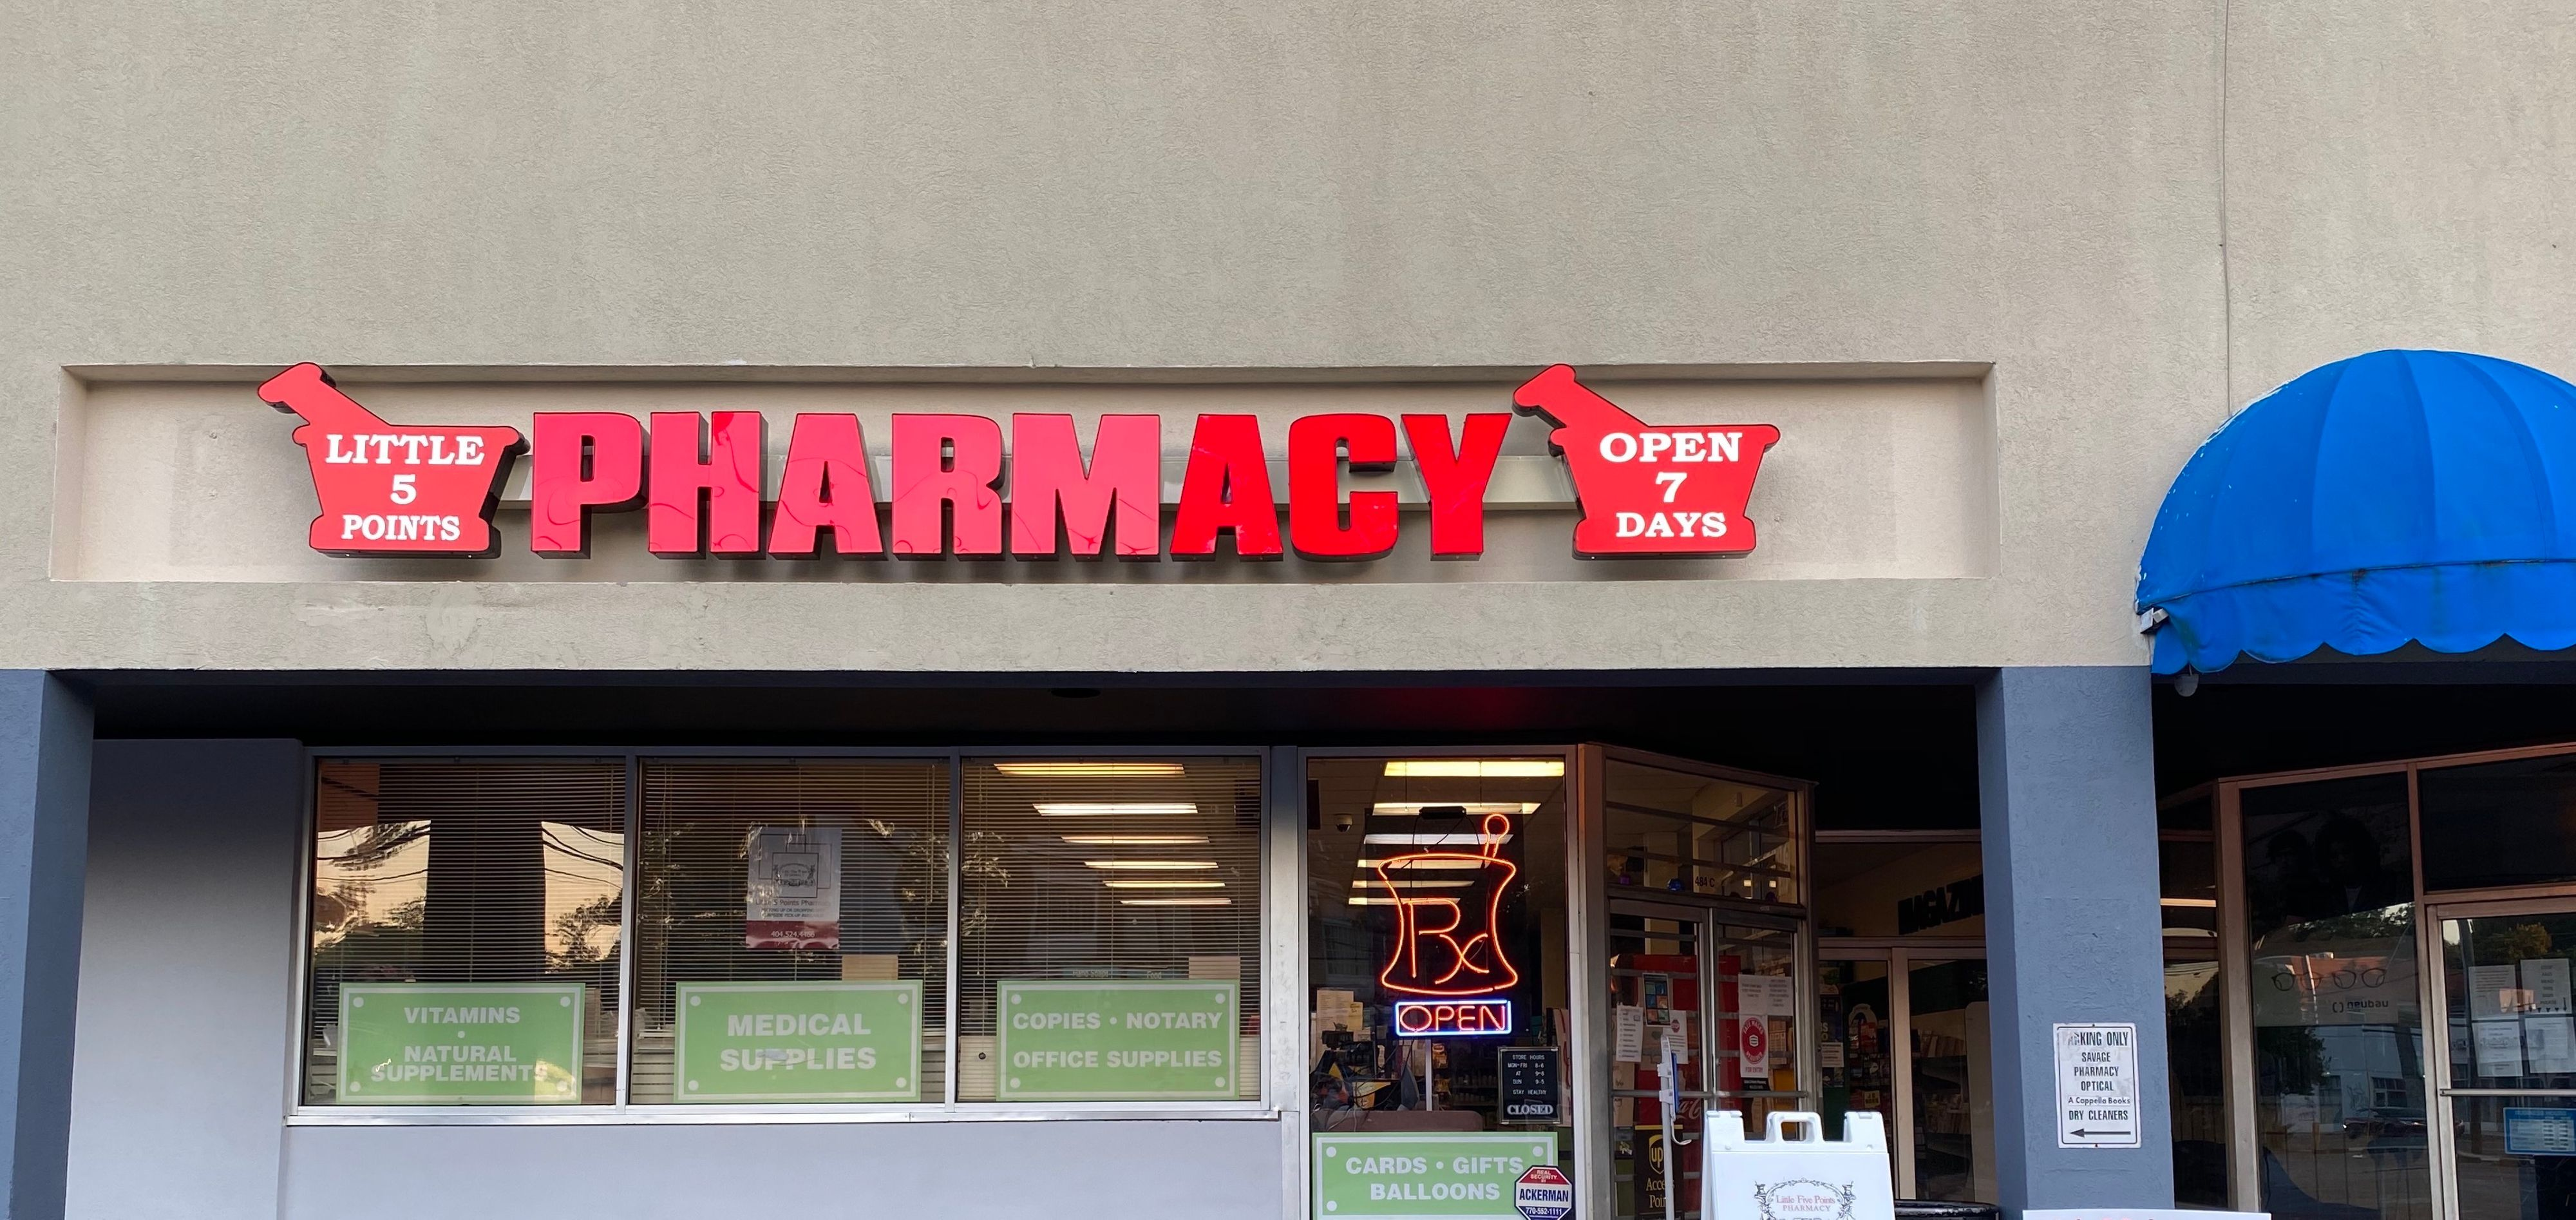 Welcome to Little 5 Points Pharmacy!